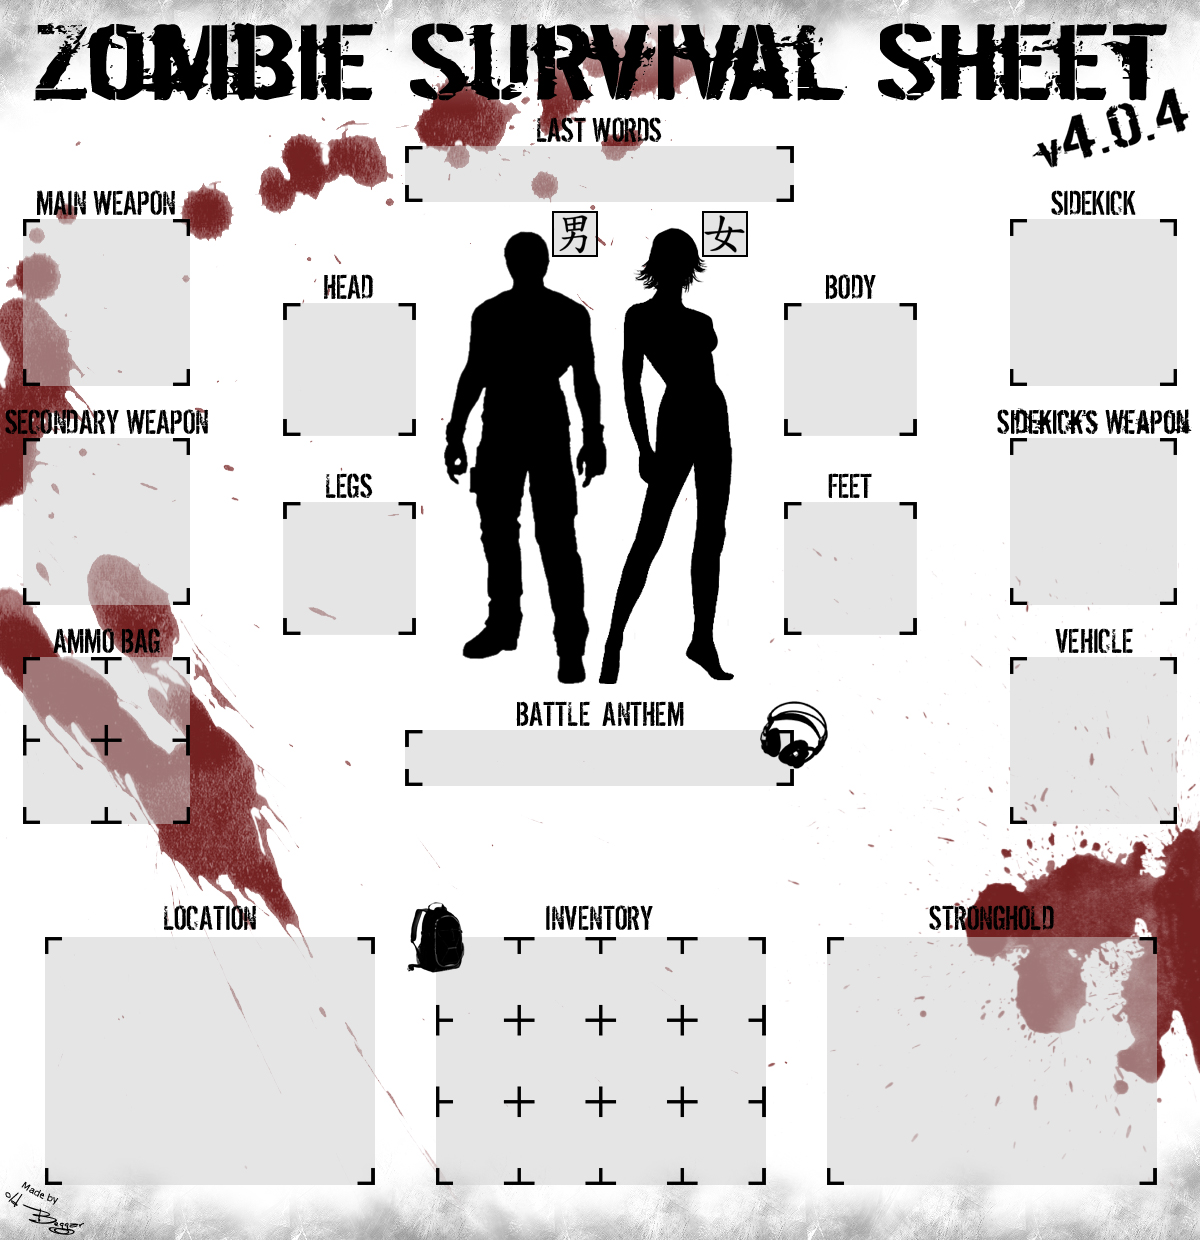 Zombie Survival Sheet by Trompwn on DeviantArt